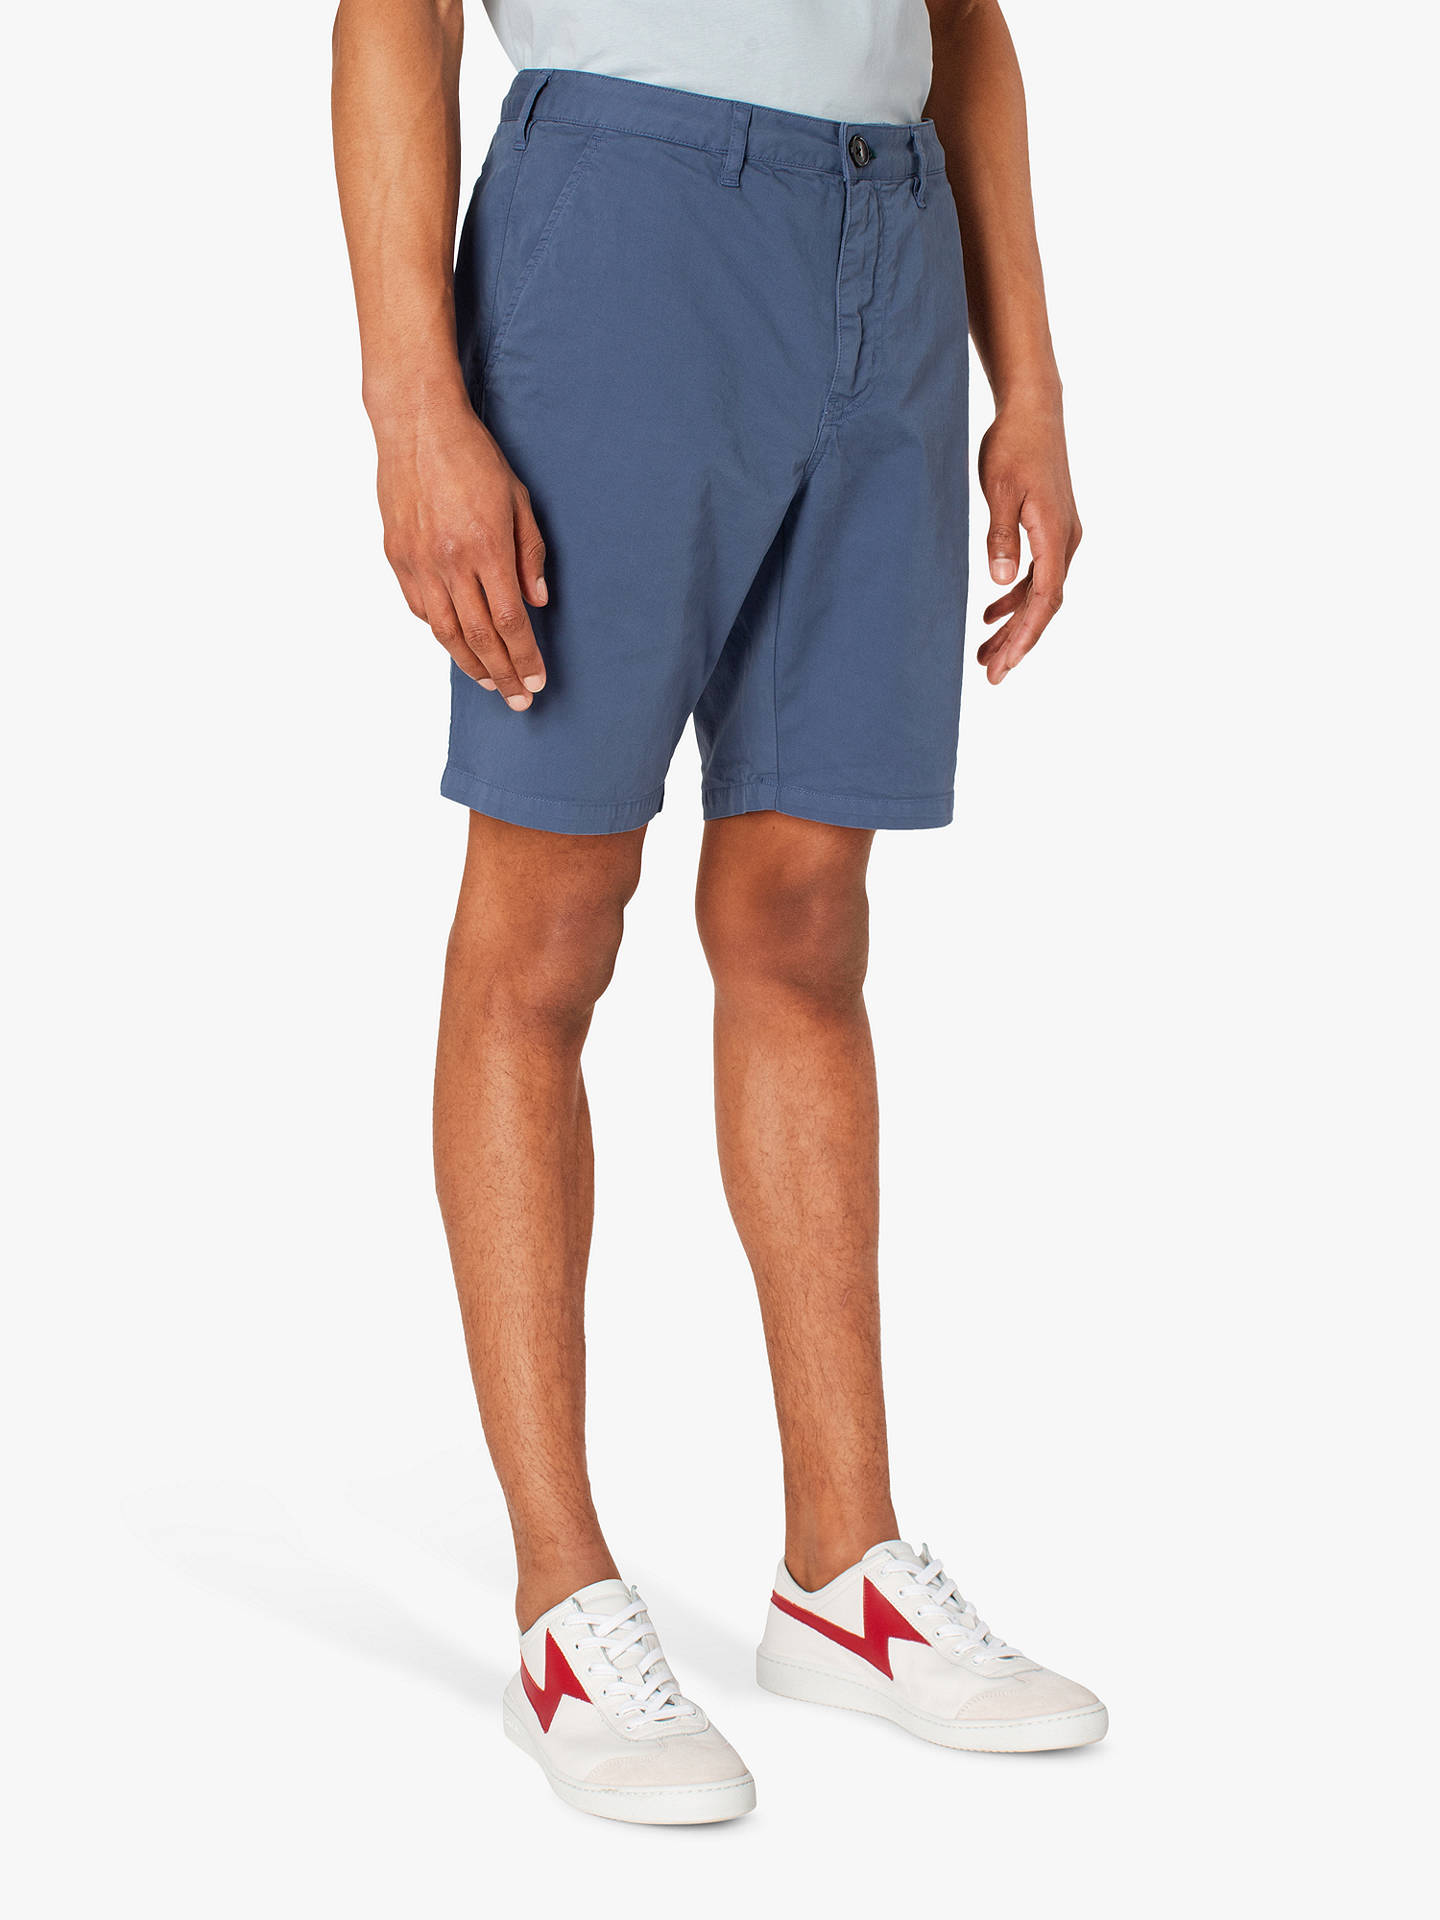 PS Paul Smith Stretch Cotton Shorts at John Lewis & Partners